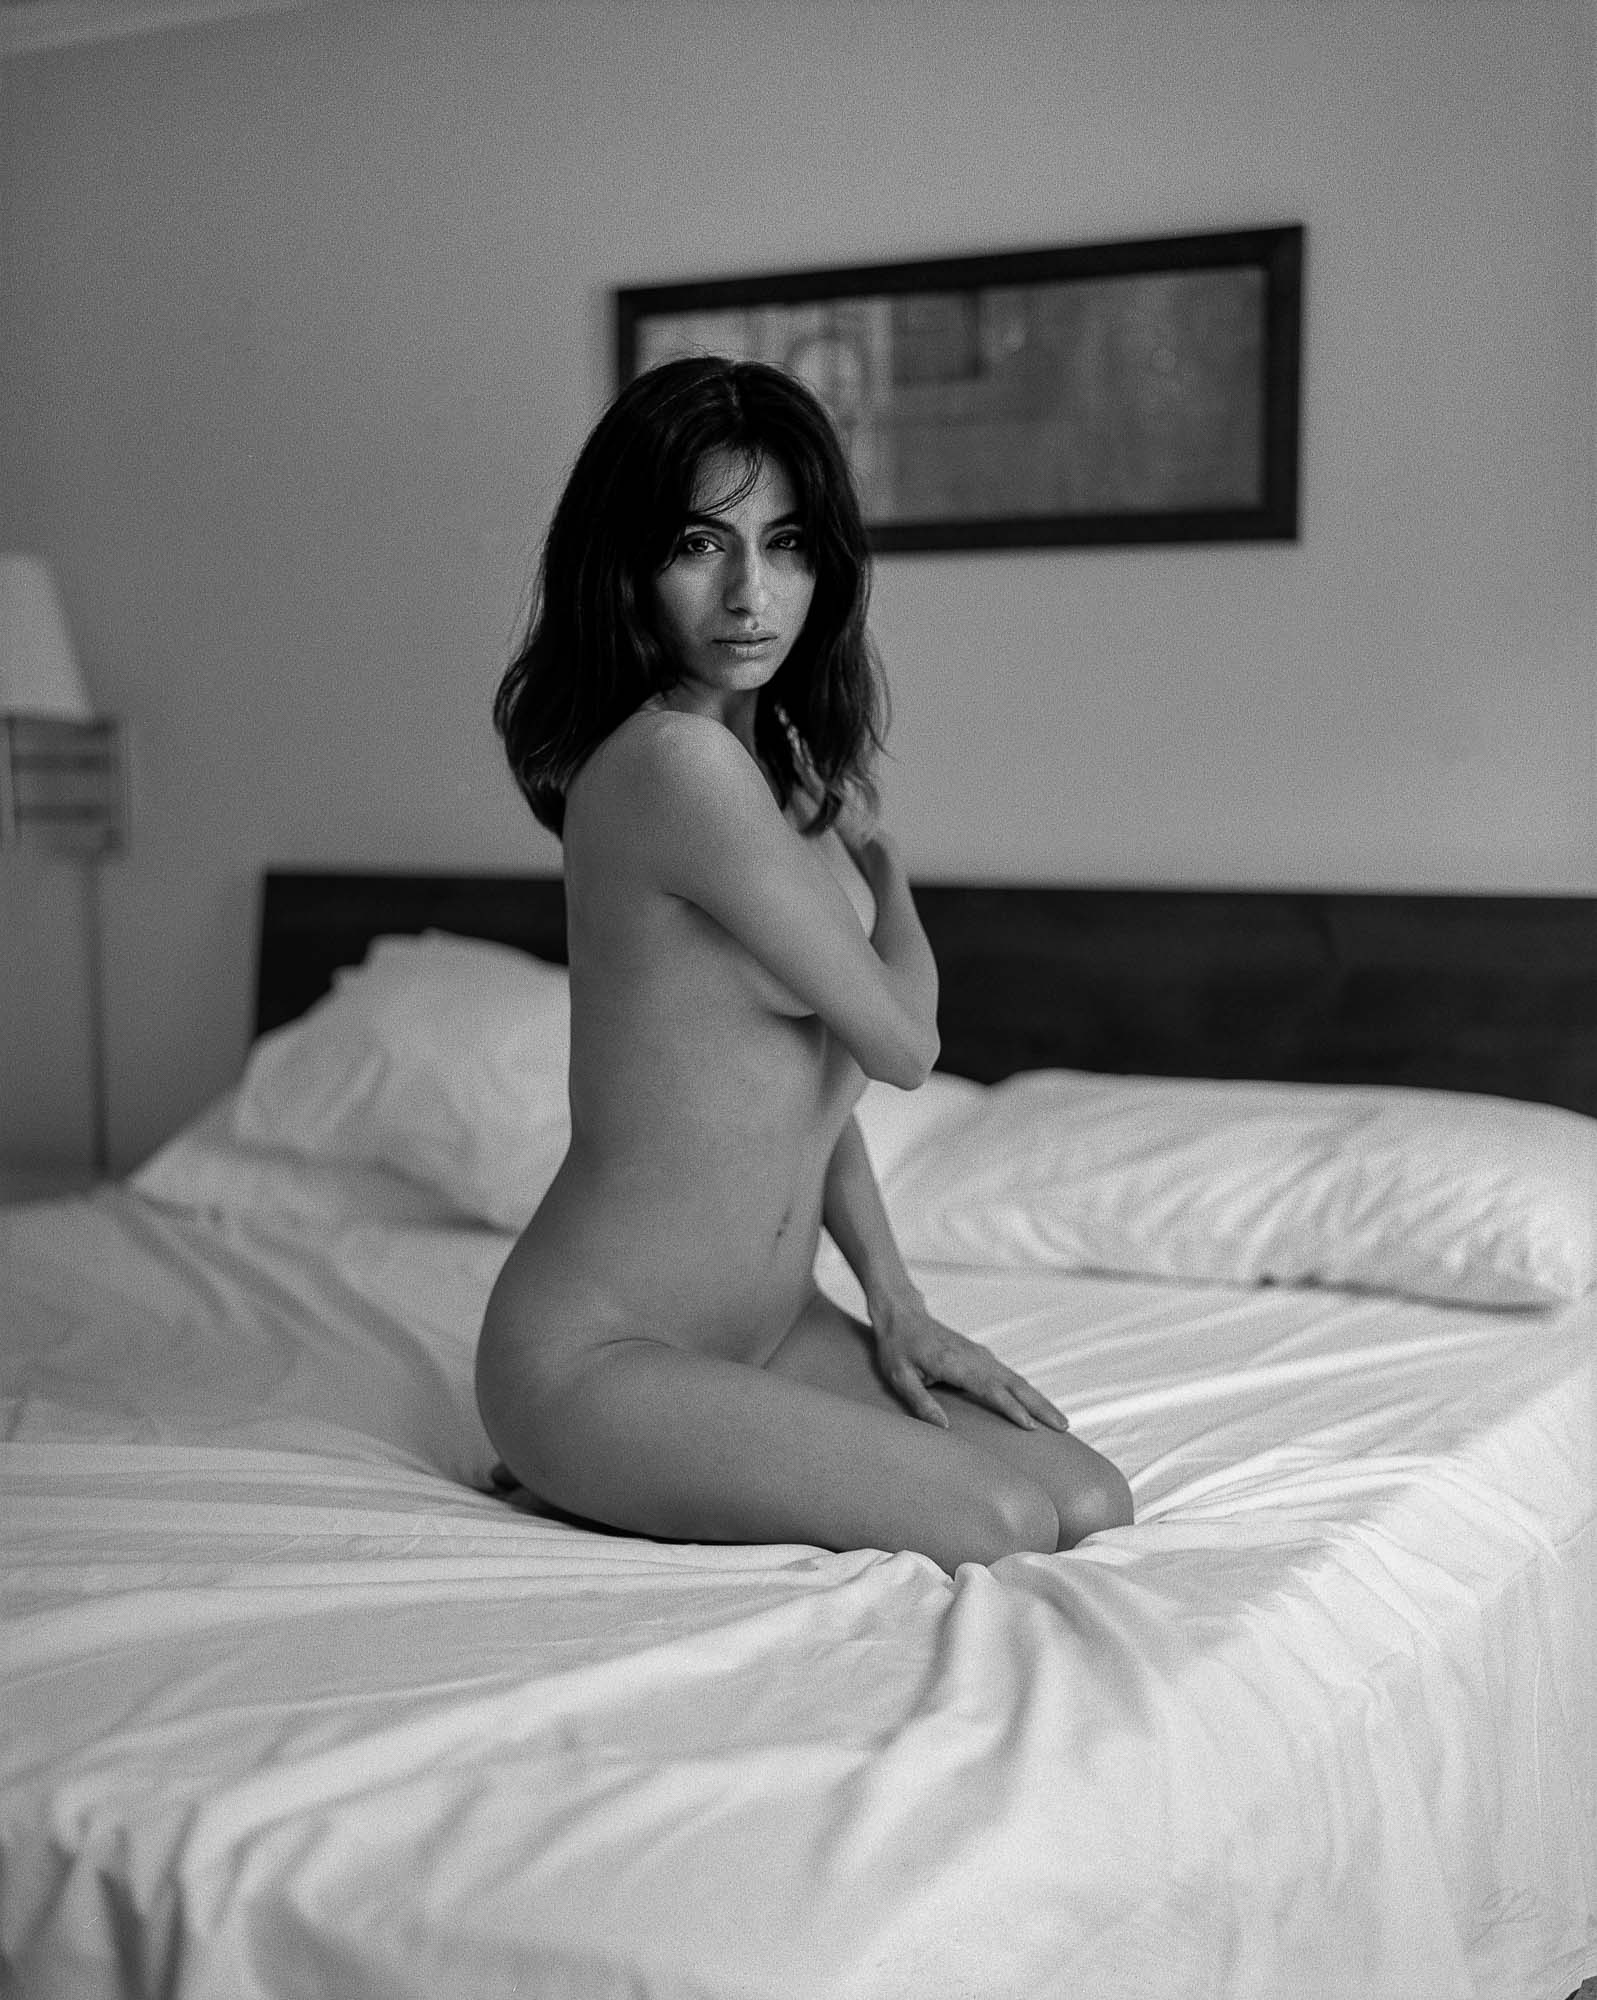 nude portrait of a lady on a bed with white sheets